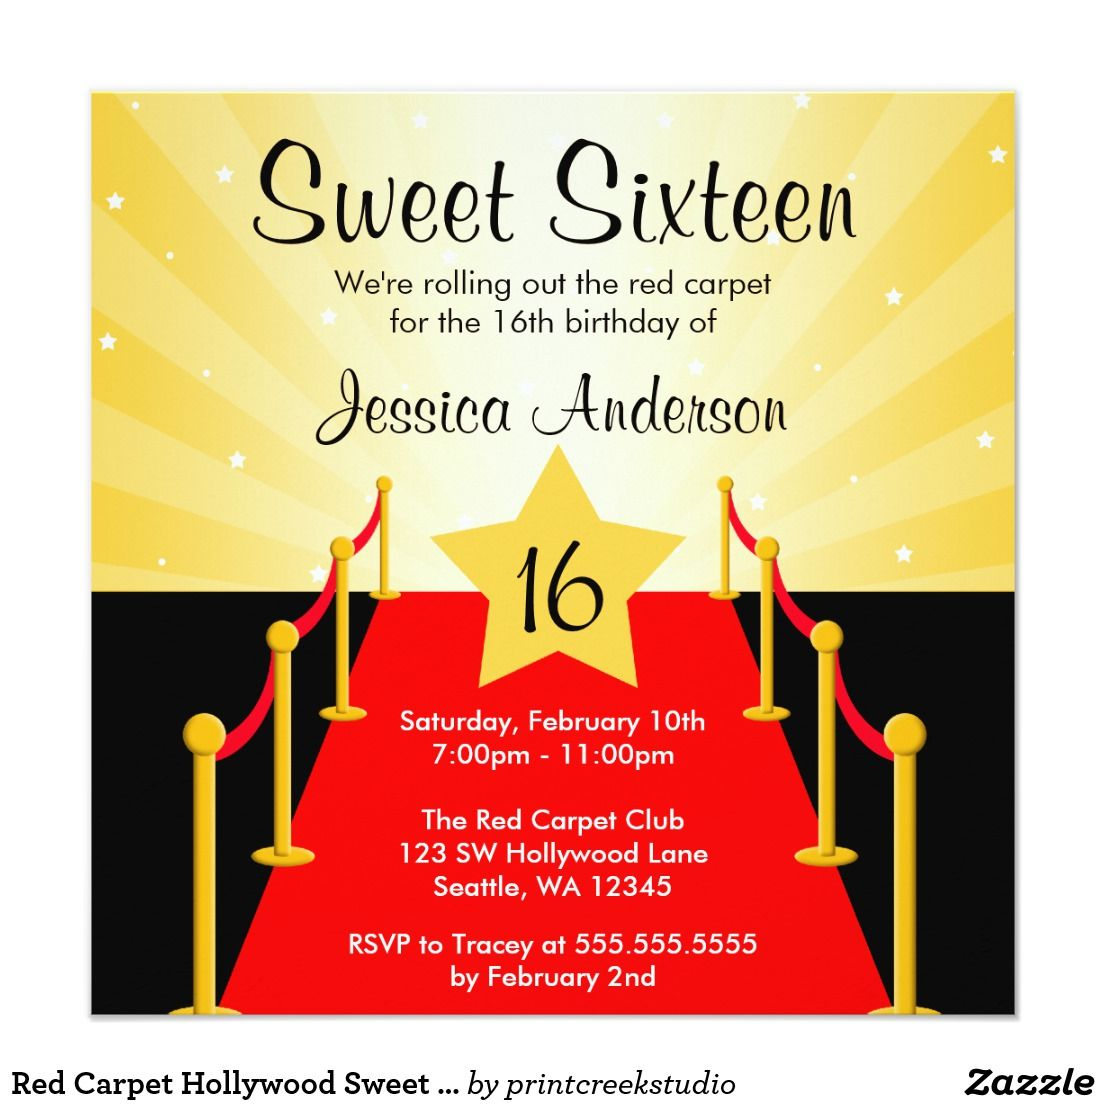 Red Carpet Hollywood Sweet 16 Birthday Party Card   Sixteenth ...